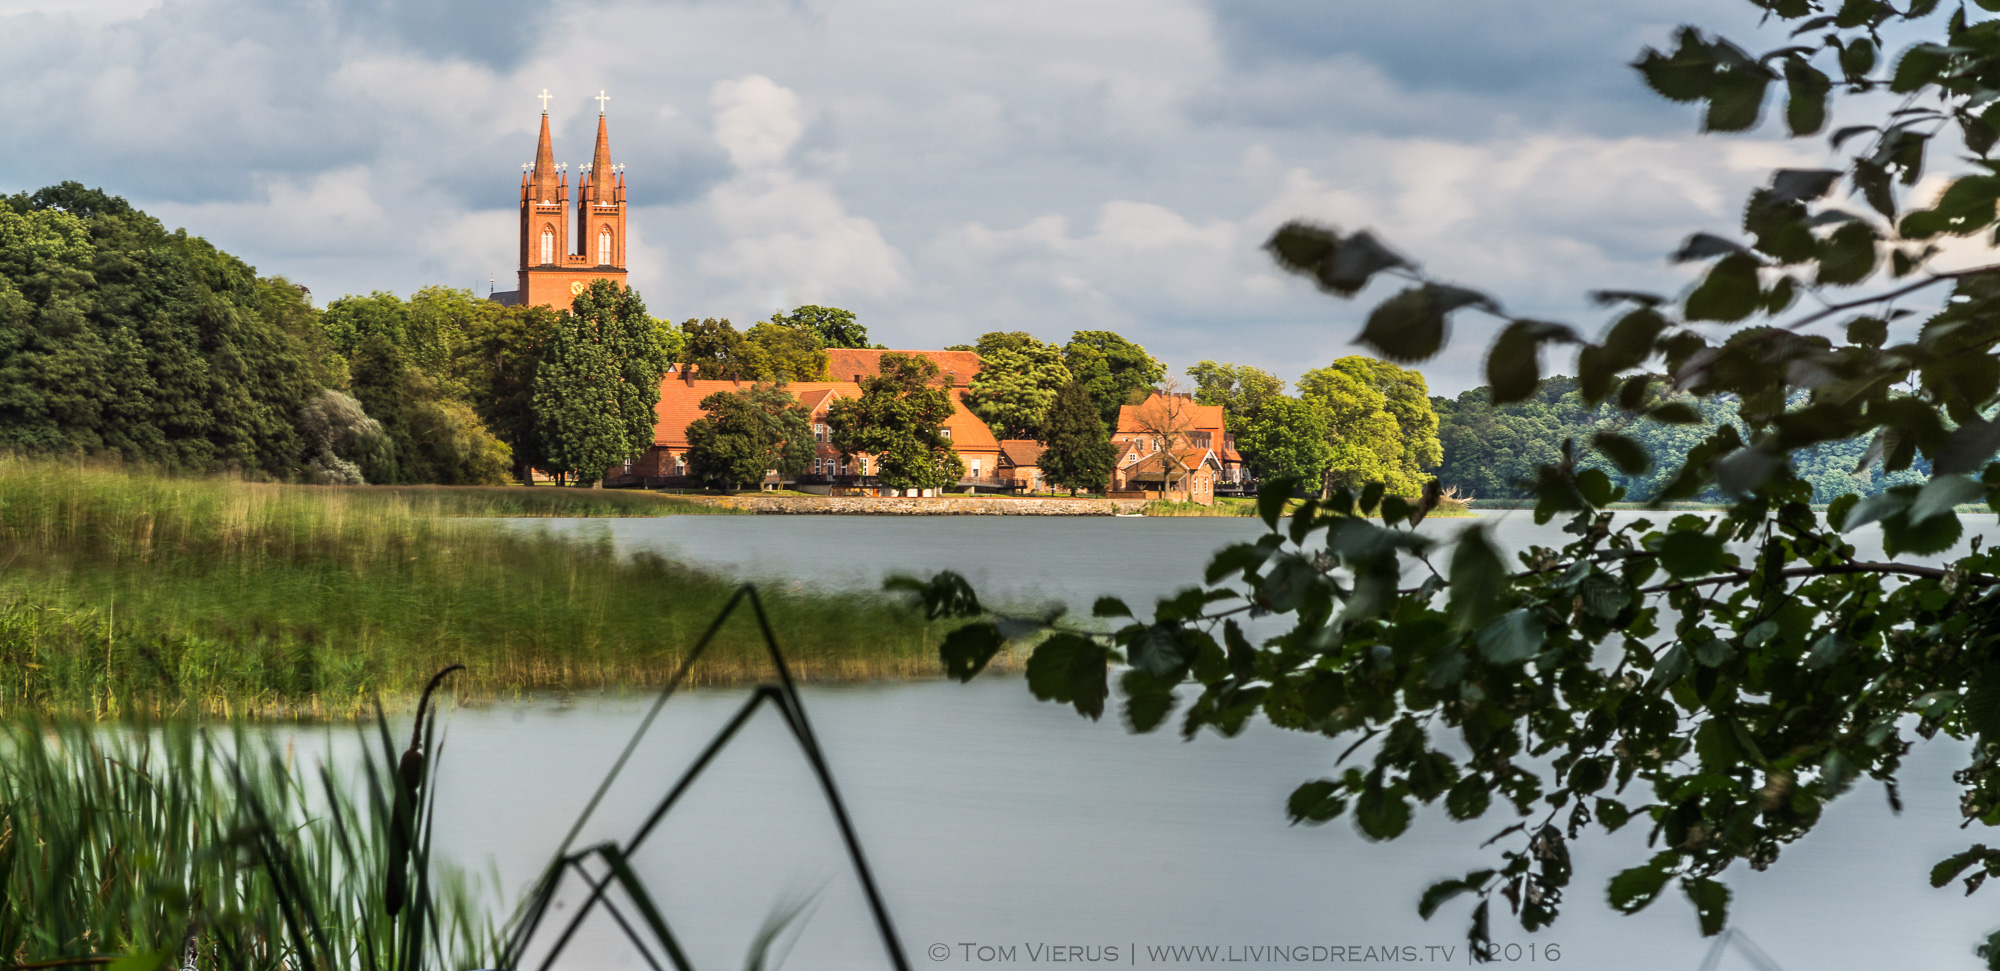 Mecklenburg-West Pomerania, Germany, Lake, Photography